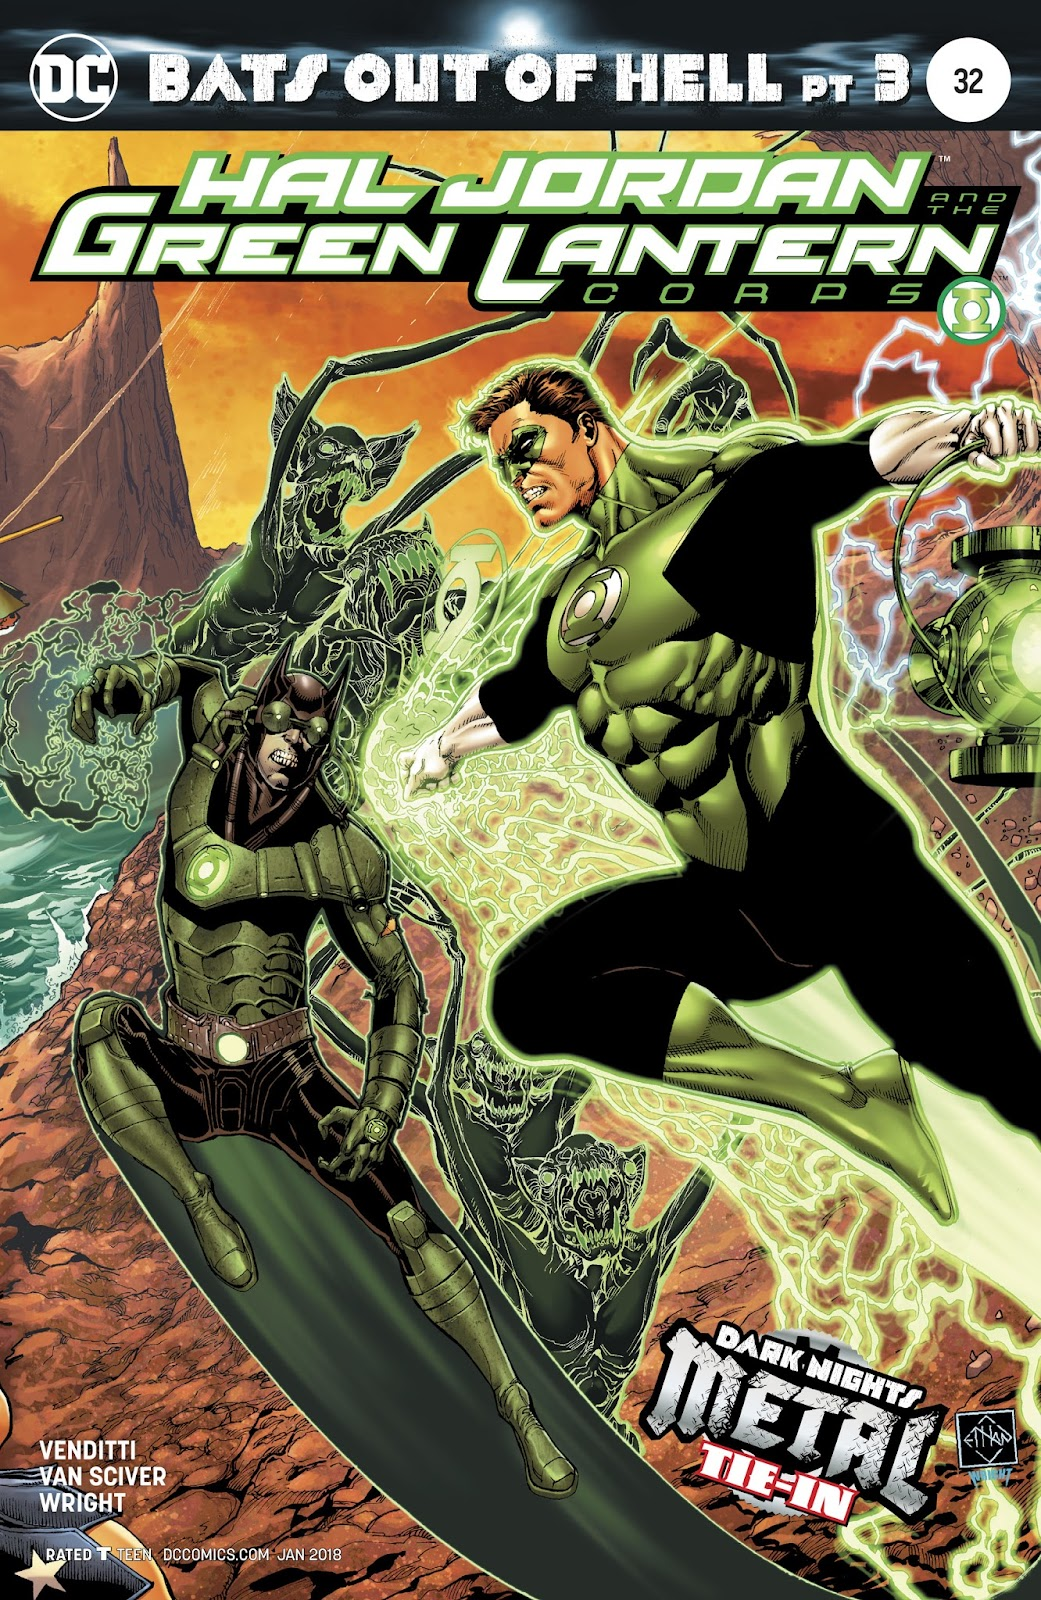 Hal Jordan & the Green Lantern Corps: Rebirth issue 32 - Page 1